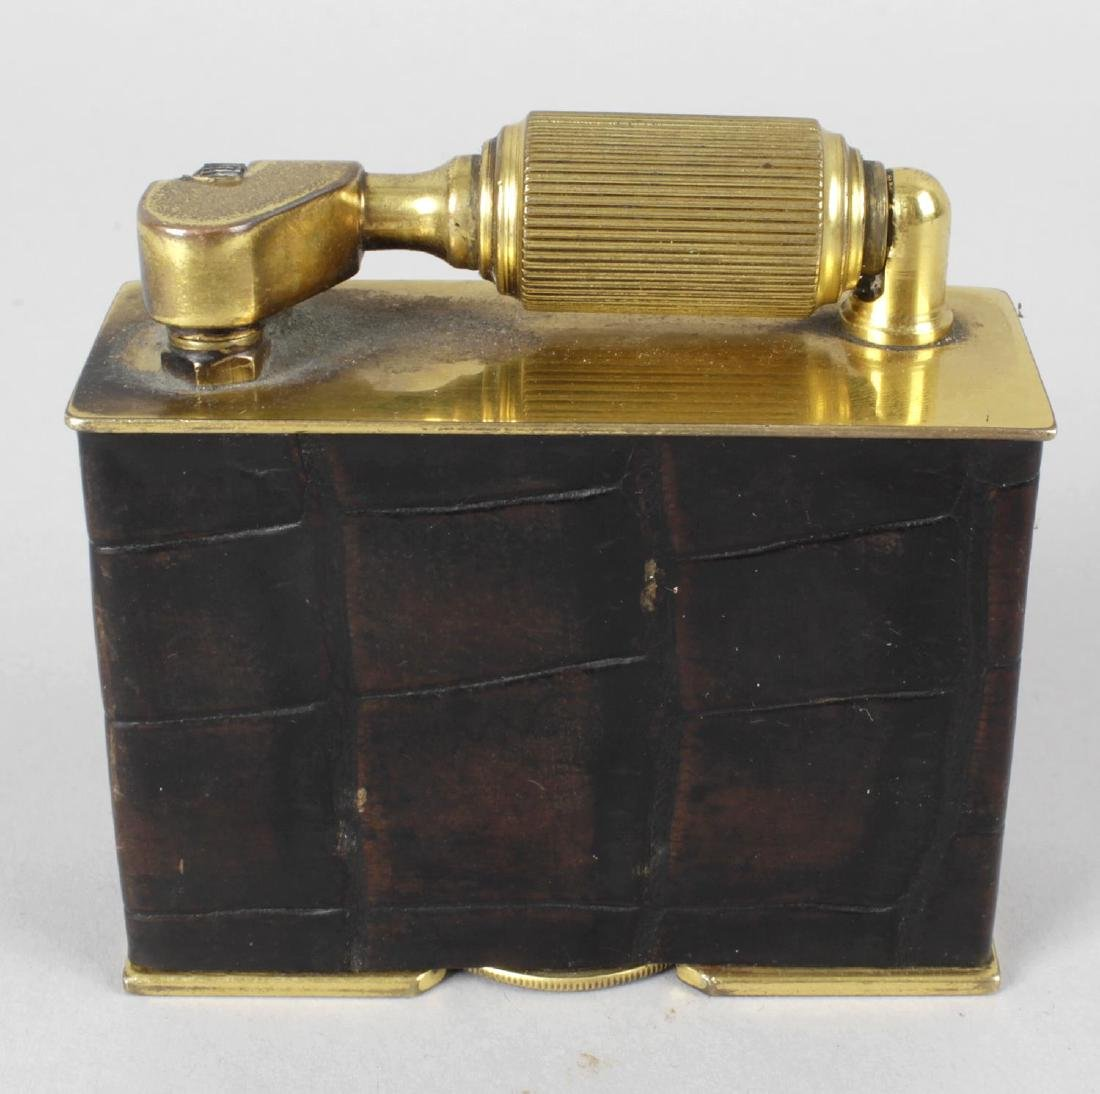 A large novelty 'McMurdo' table cigarette lighter. The